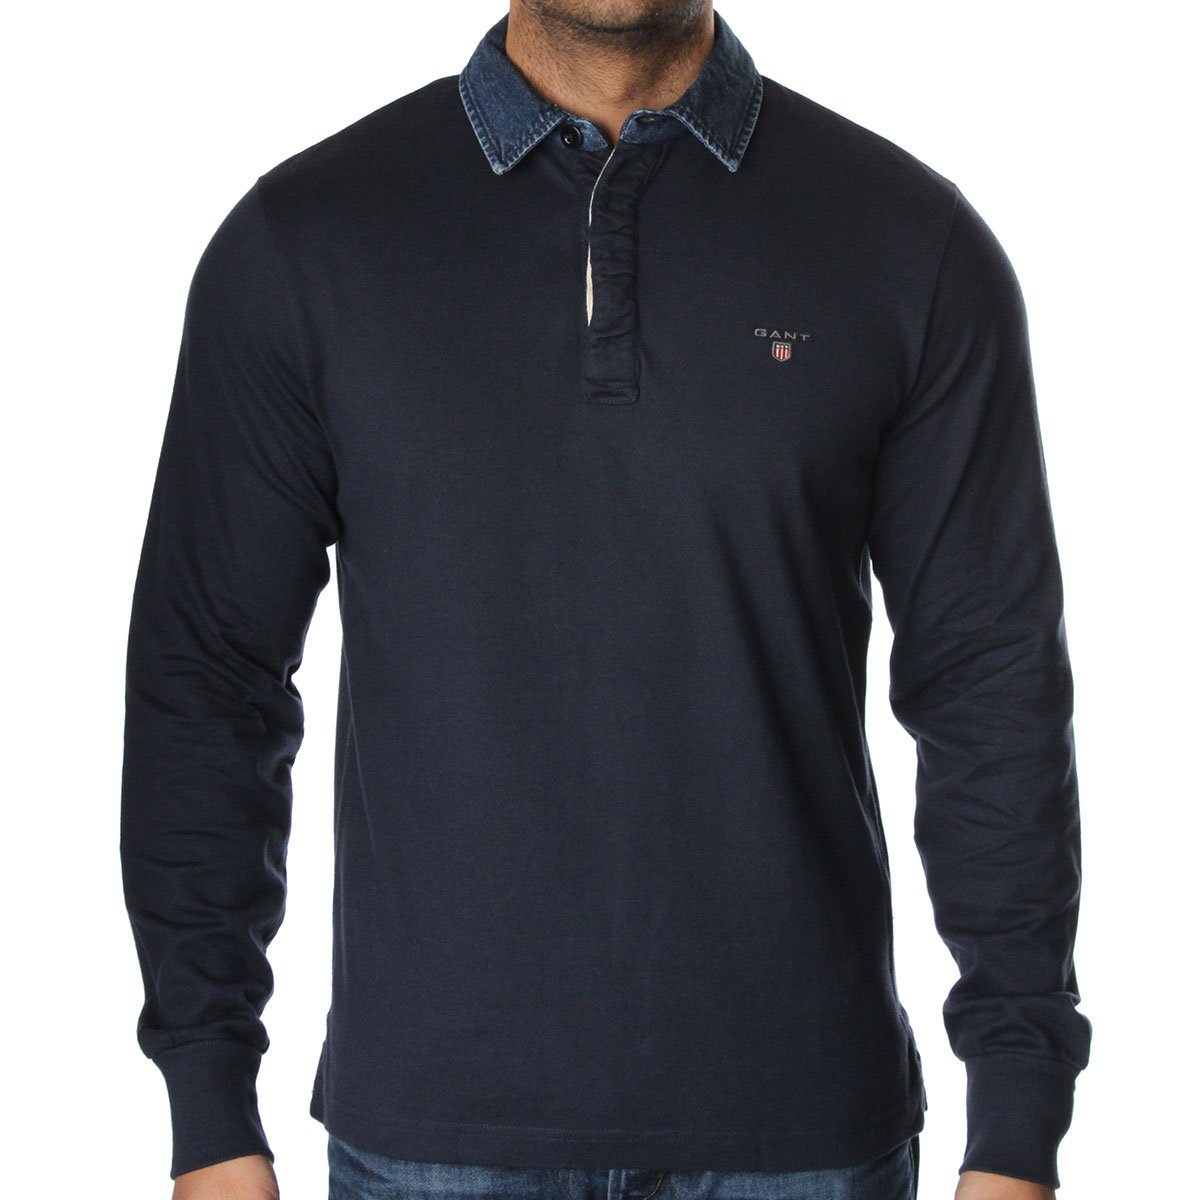 Gant Heavy Rugby Polo T Shirt Gant From The Menswear Site Uk